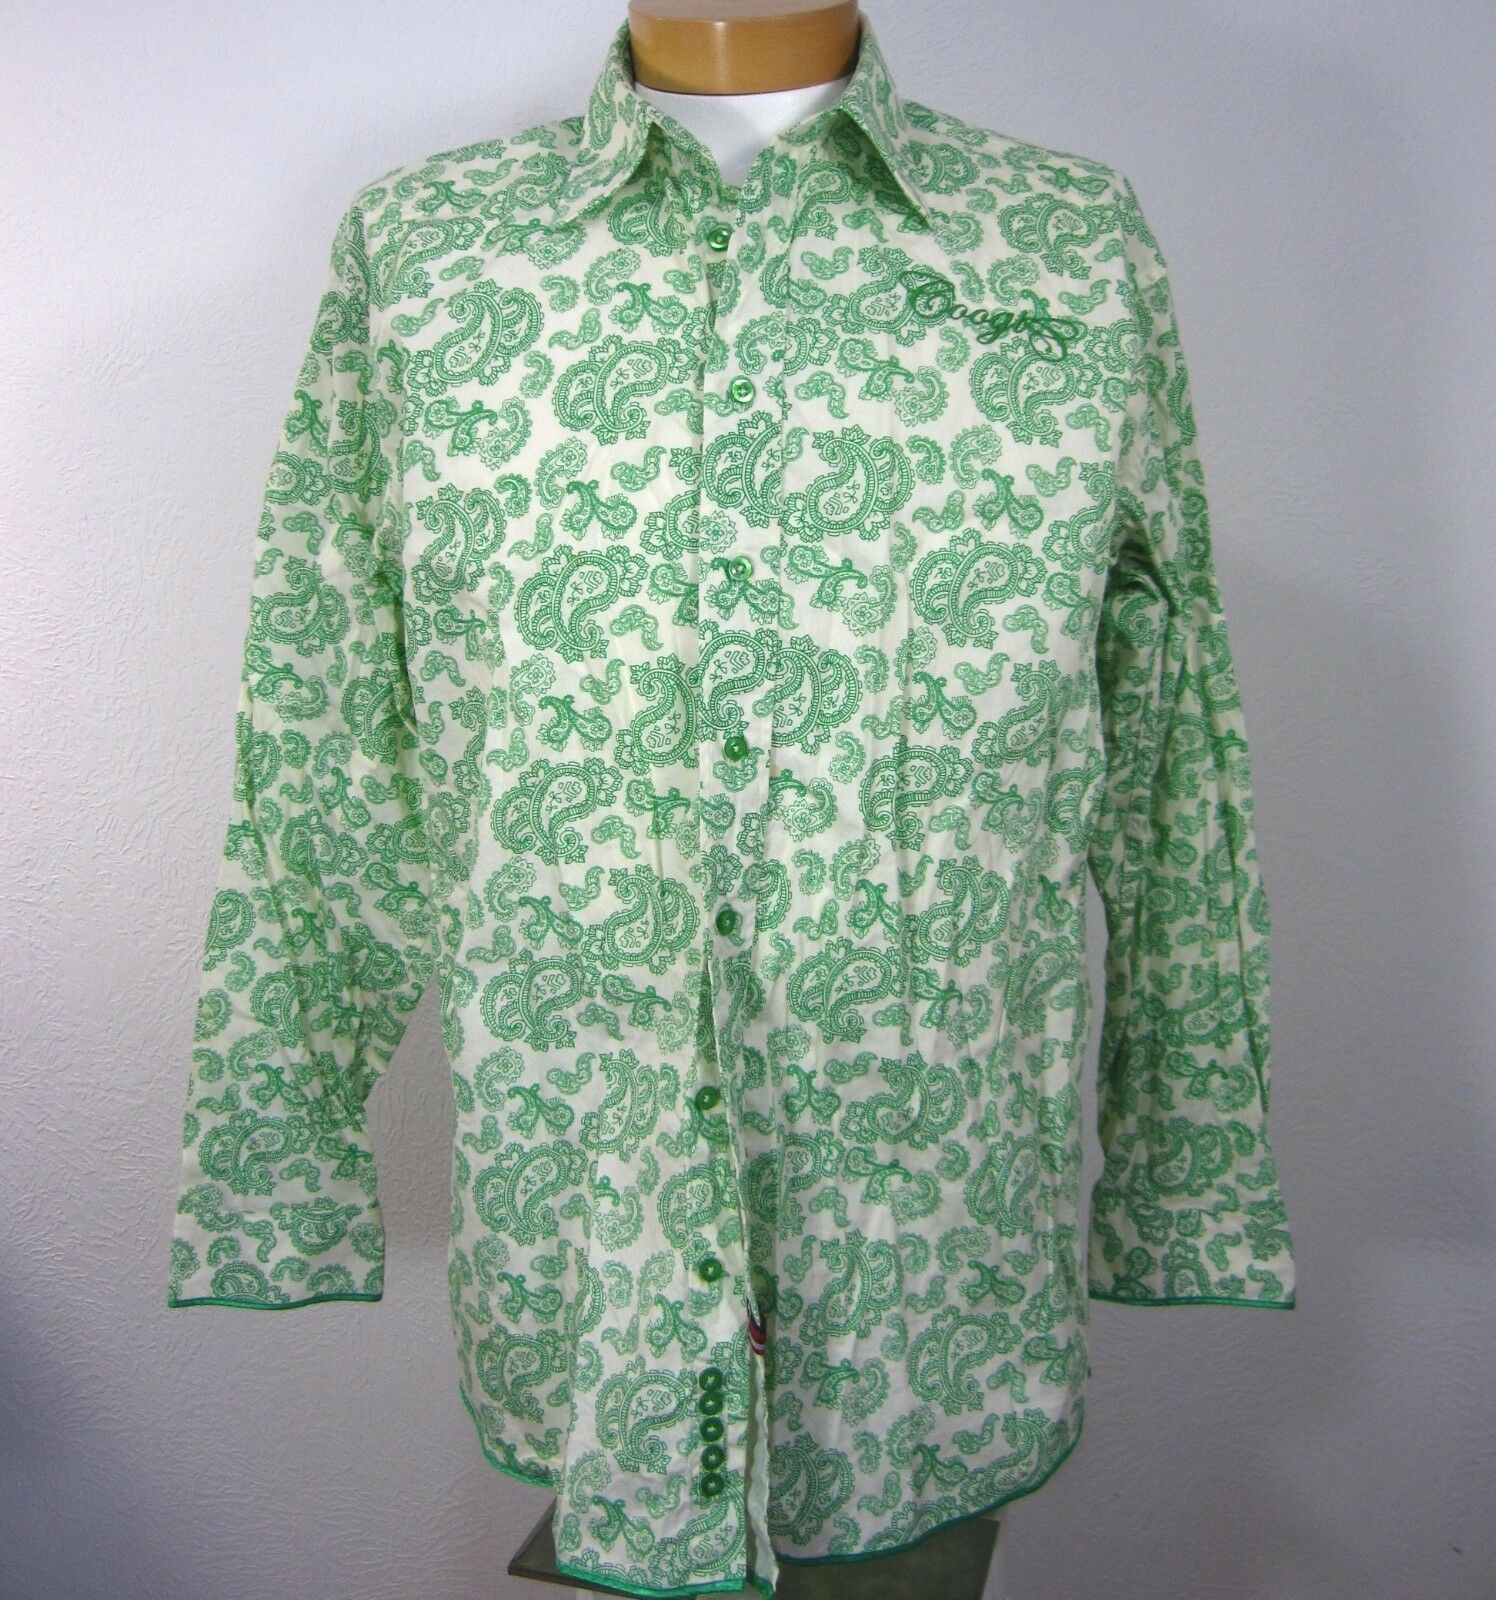 COOGI LONG SLEEVE MEN'S CASUAL SHIRT SIZE XL EXTRA LARGE WHITE GREEN PAISLEY